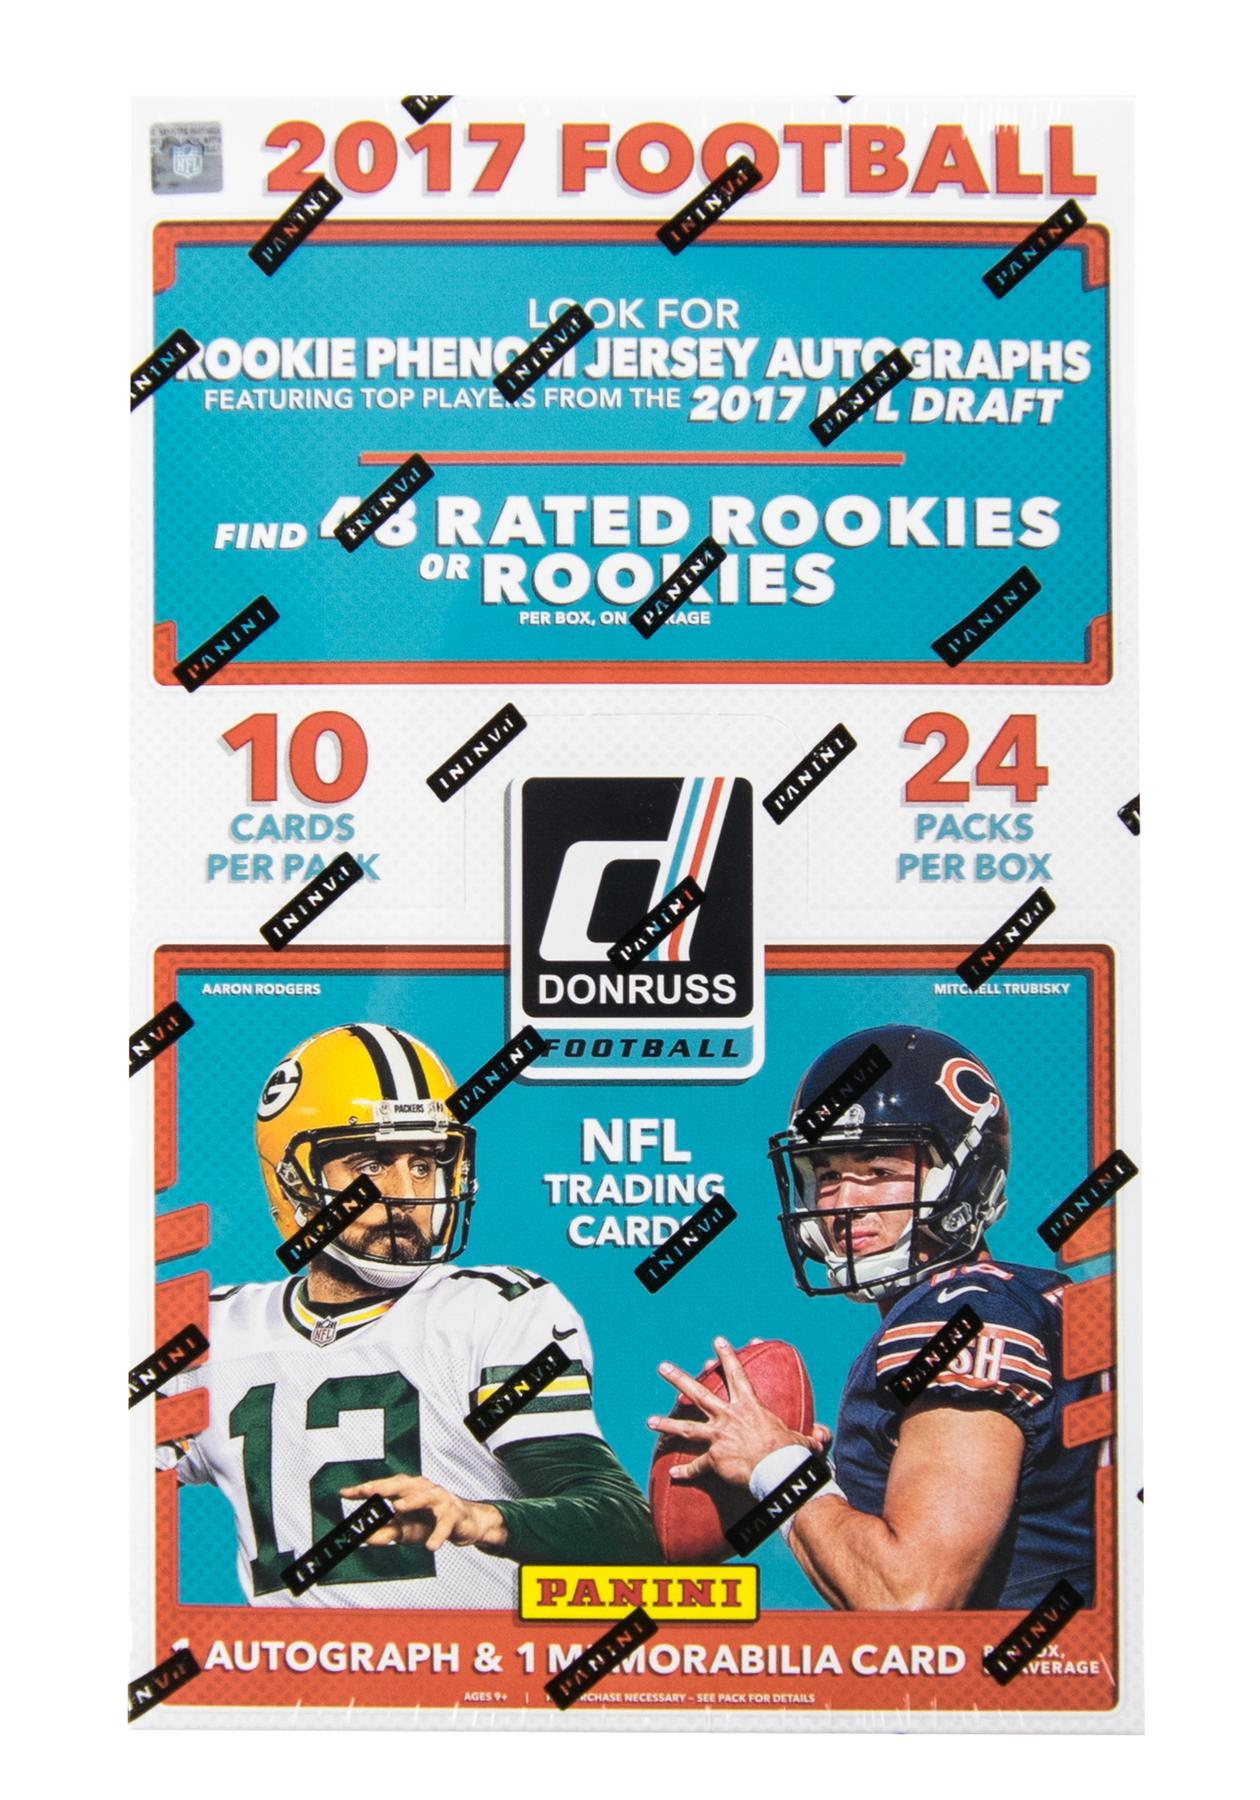 2017 Panini Donruss Football Hobby Box Da Card World